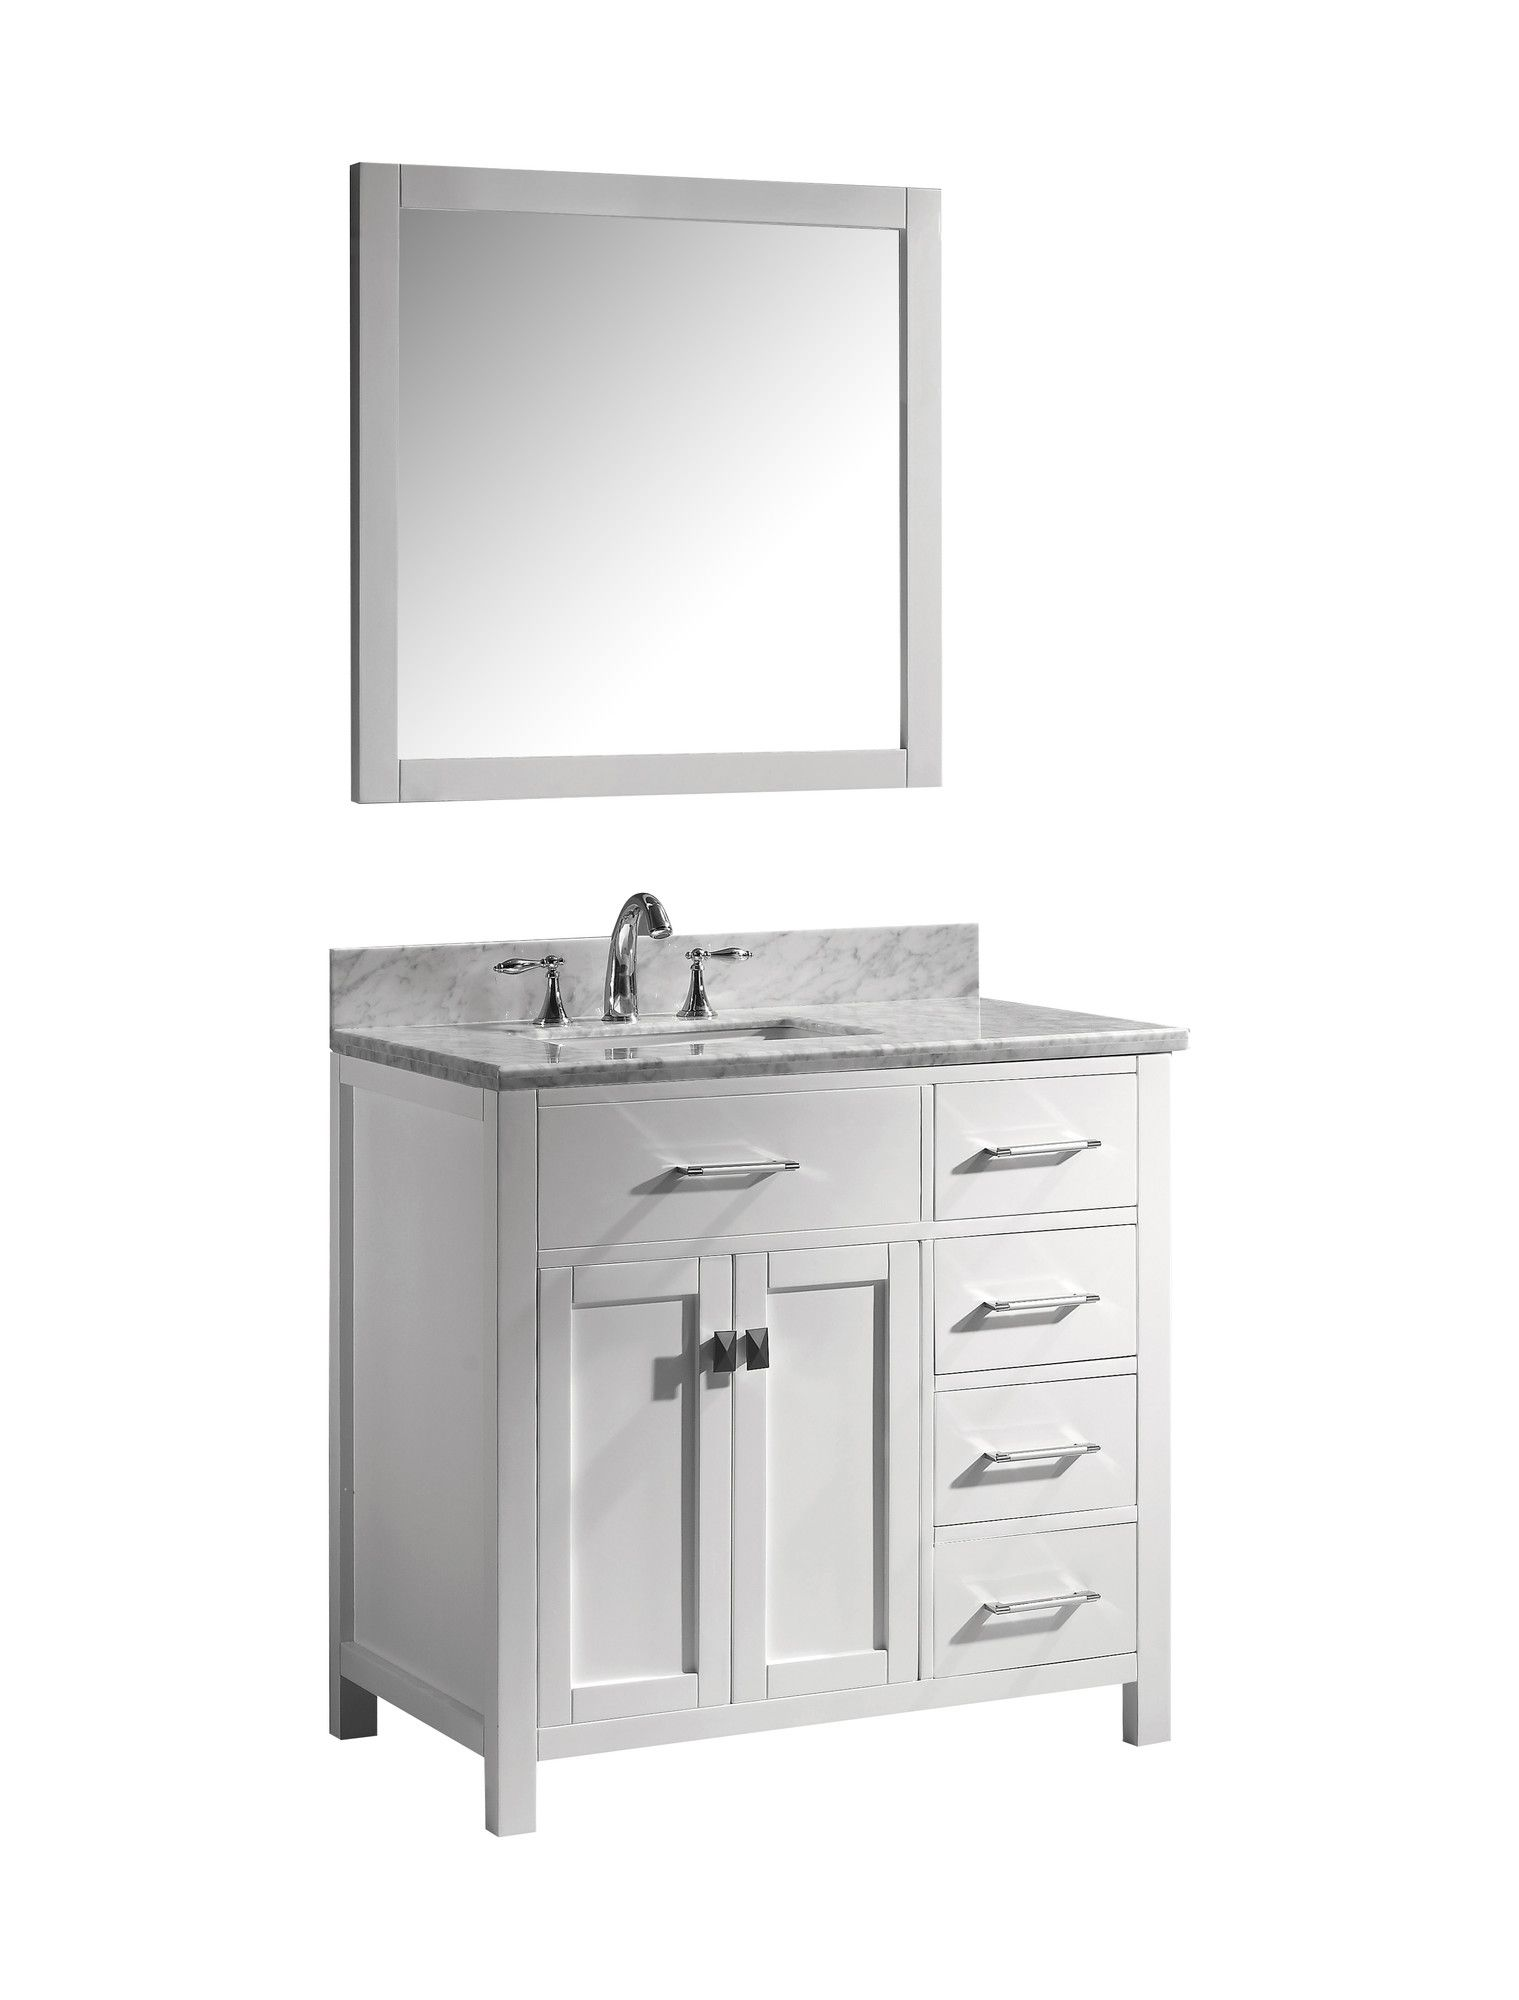 "Virtu Caroline Parkway 37"" Single Bathroom Vanity Set With Mirror Prepossessing Bathroom Cabinet Reviews Inspiration"